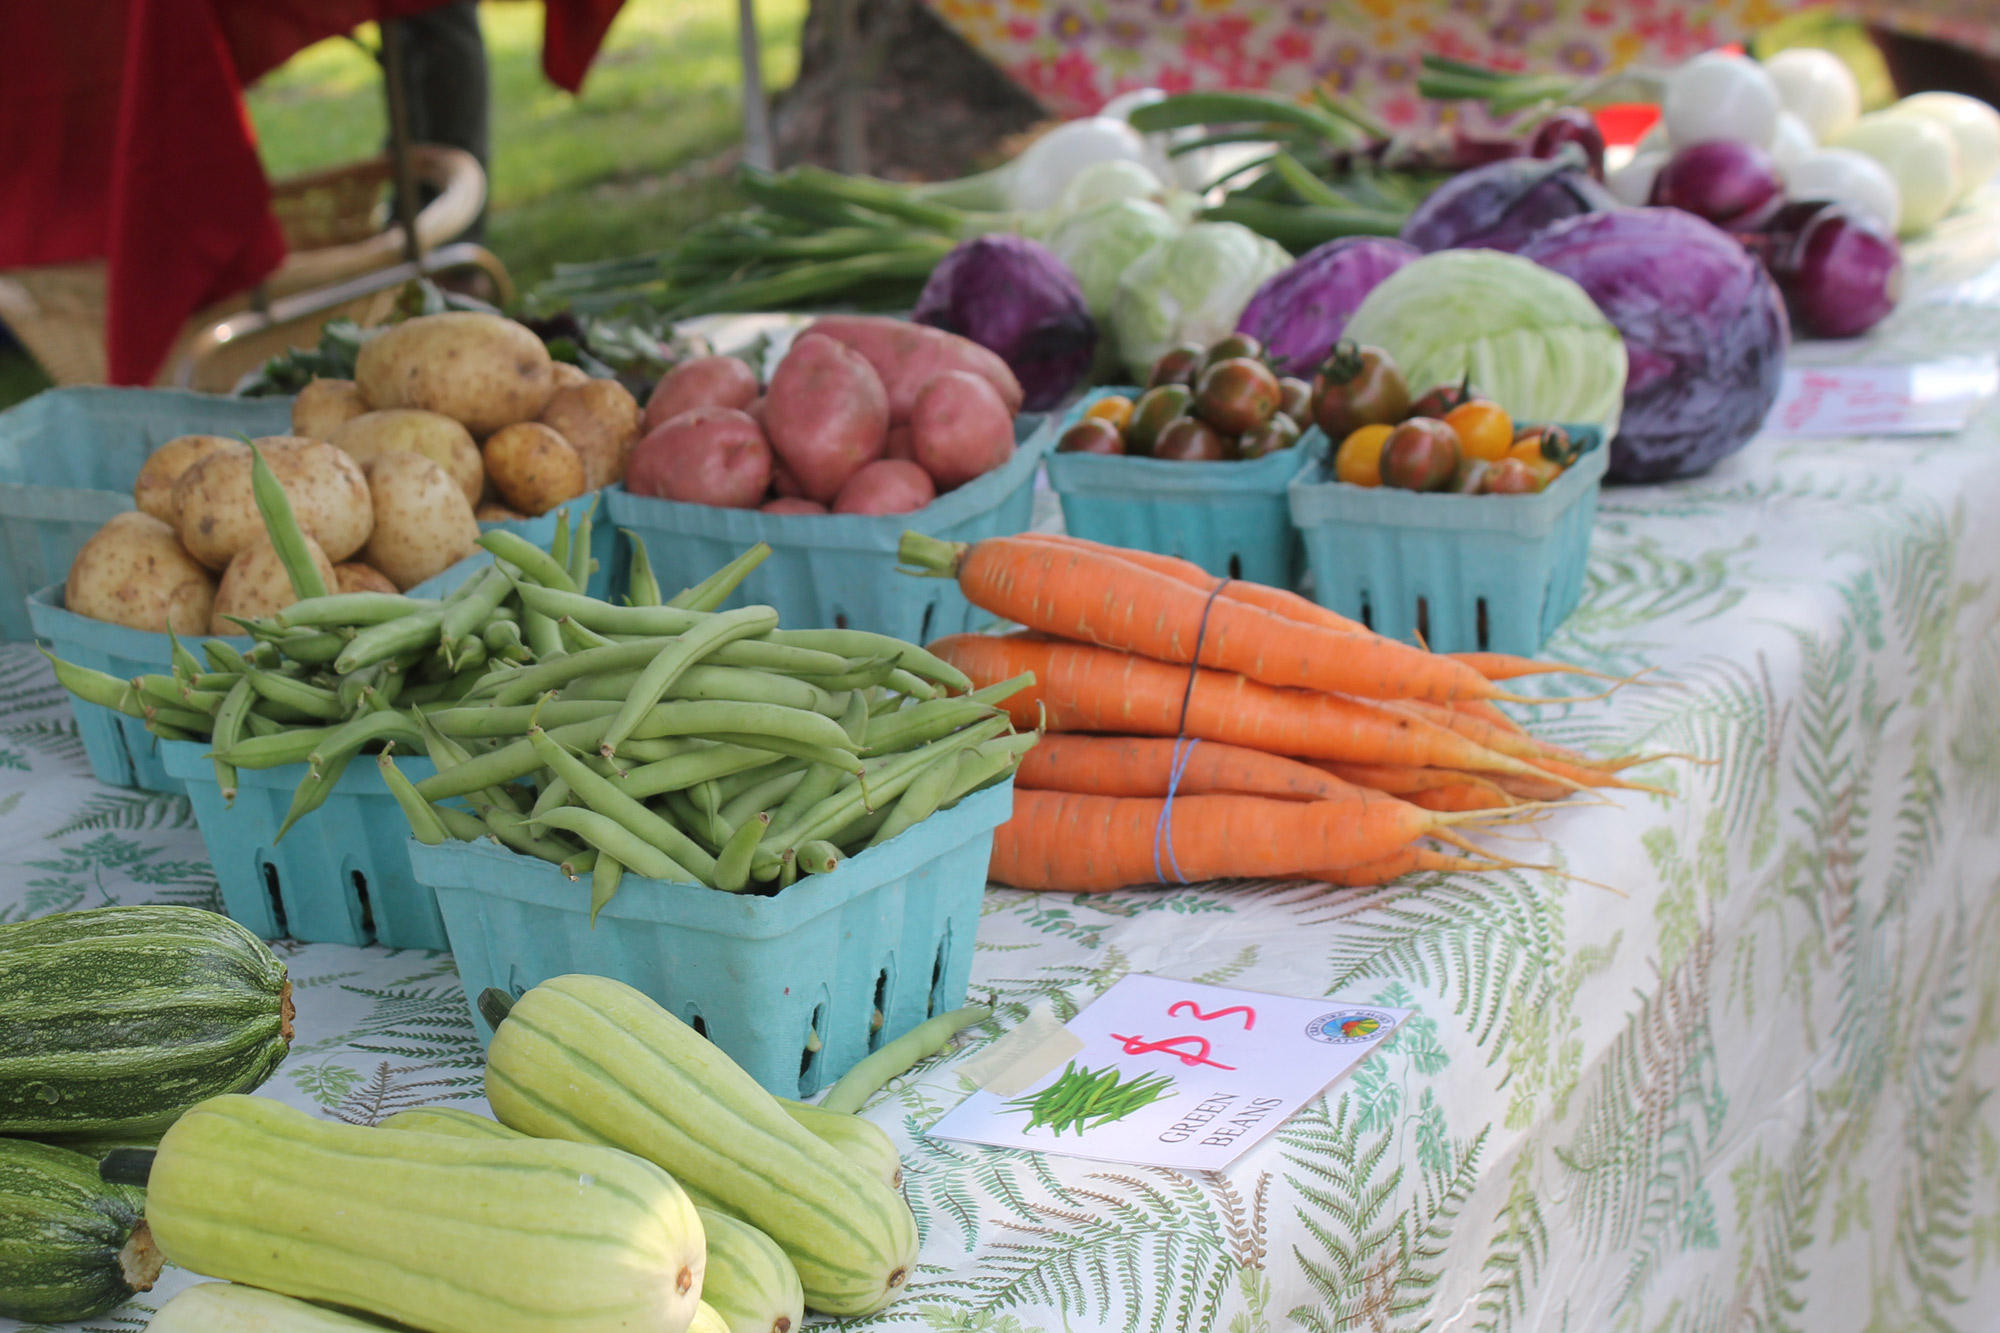 Incentive program stretches snap dollars at farmers markets iowa produce is for sale at the lsi global greens farmers market in des moines in this 2014 file photo global greens is participating in the double up food ccuart Images